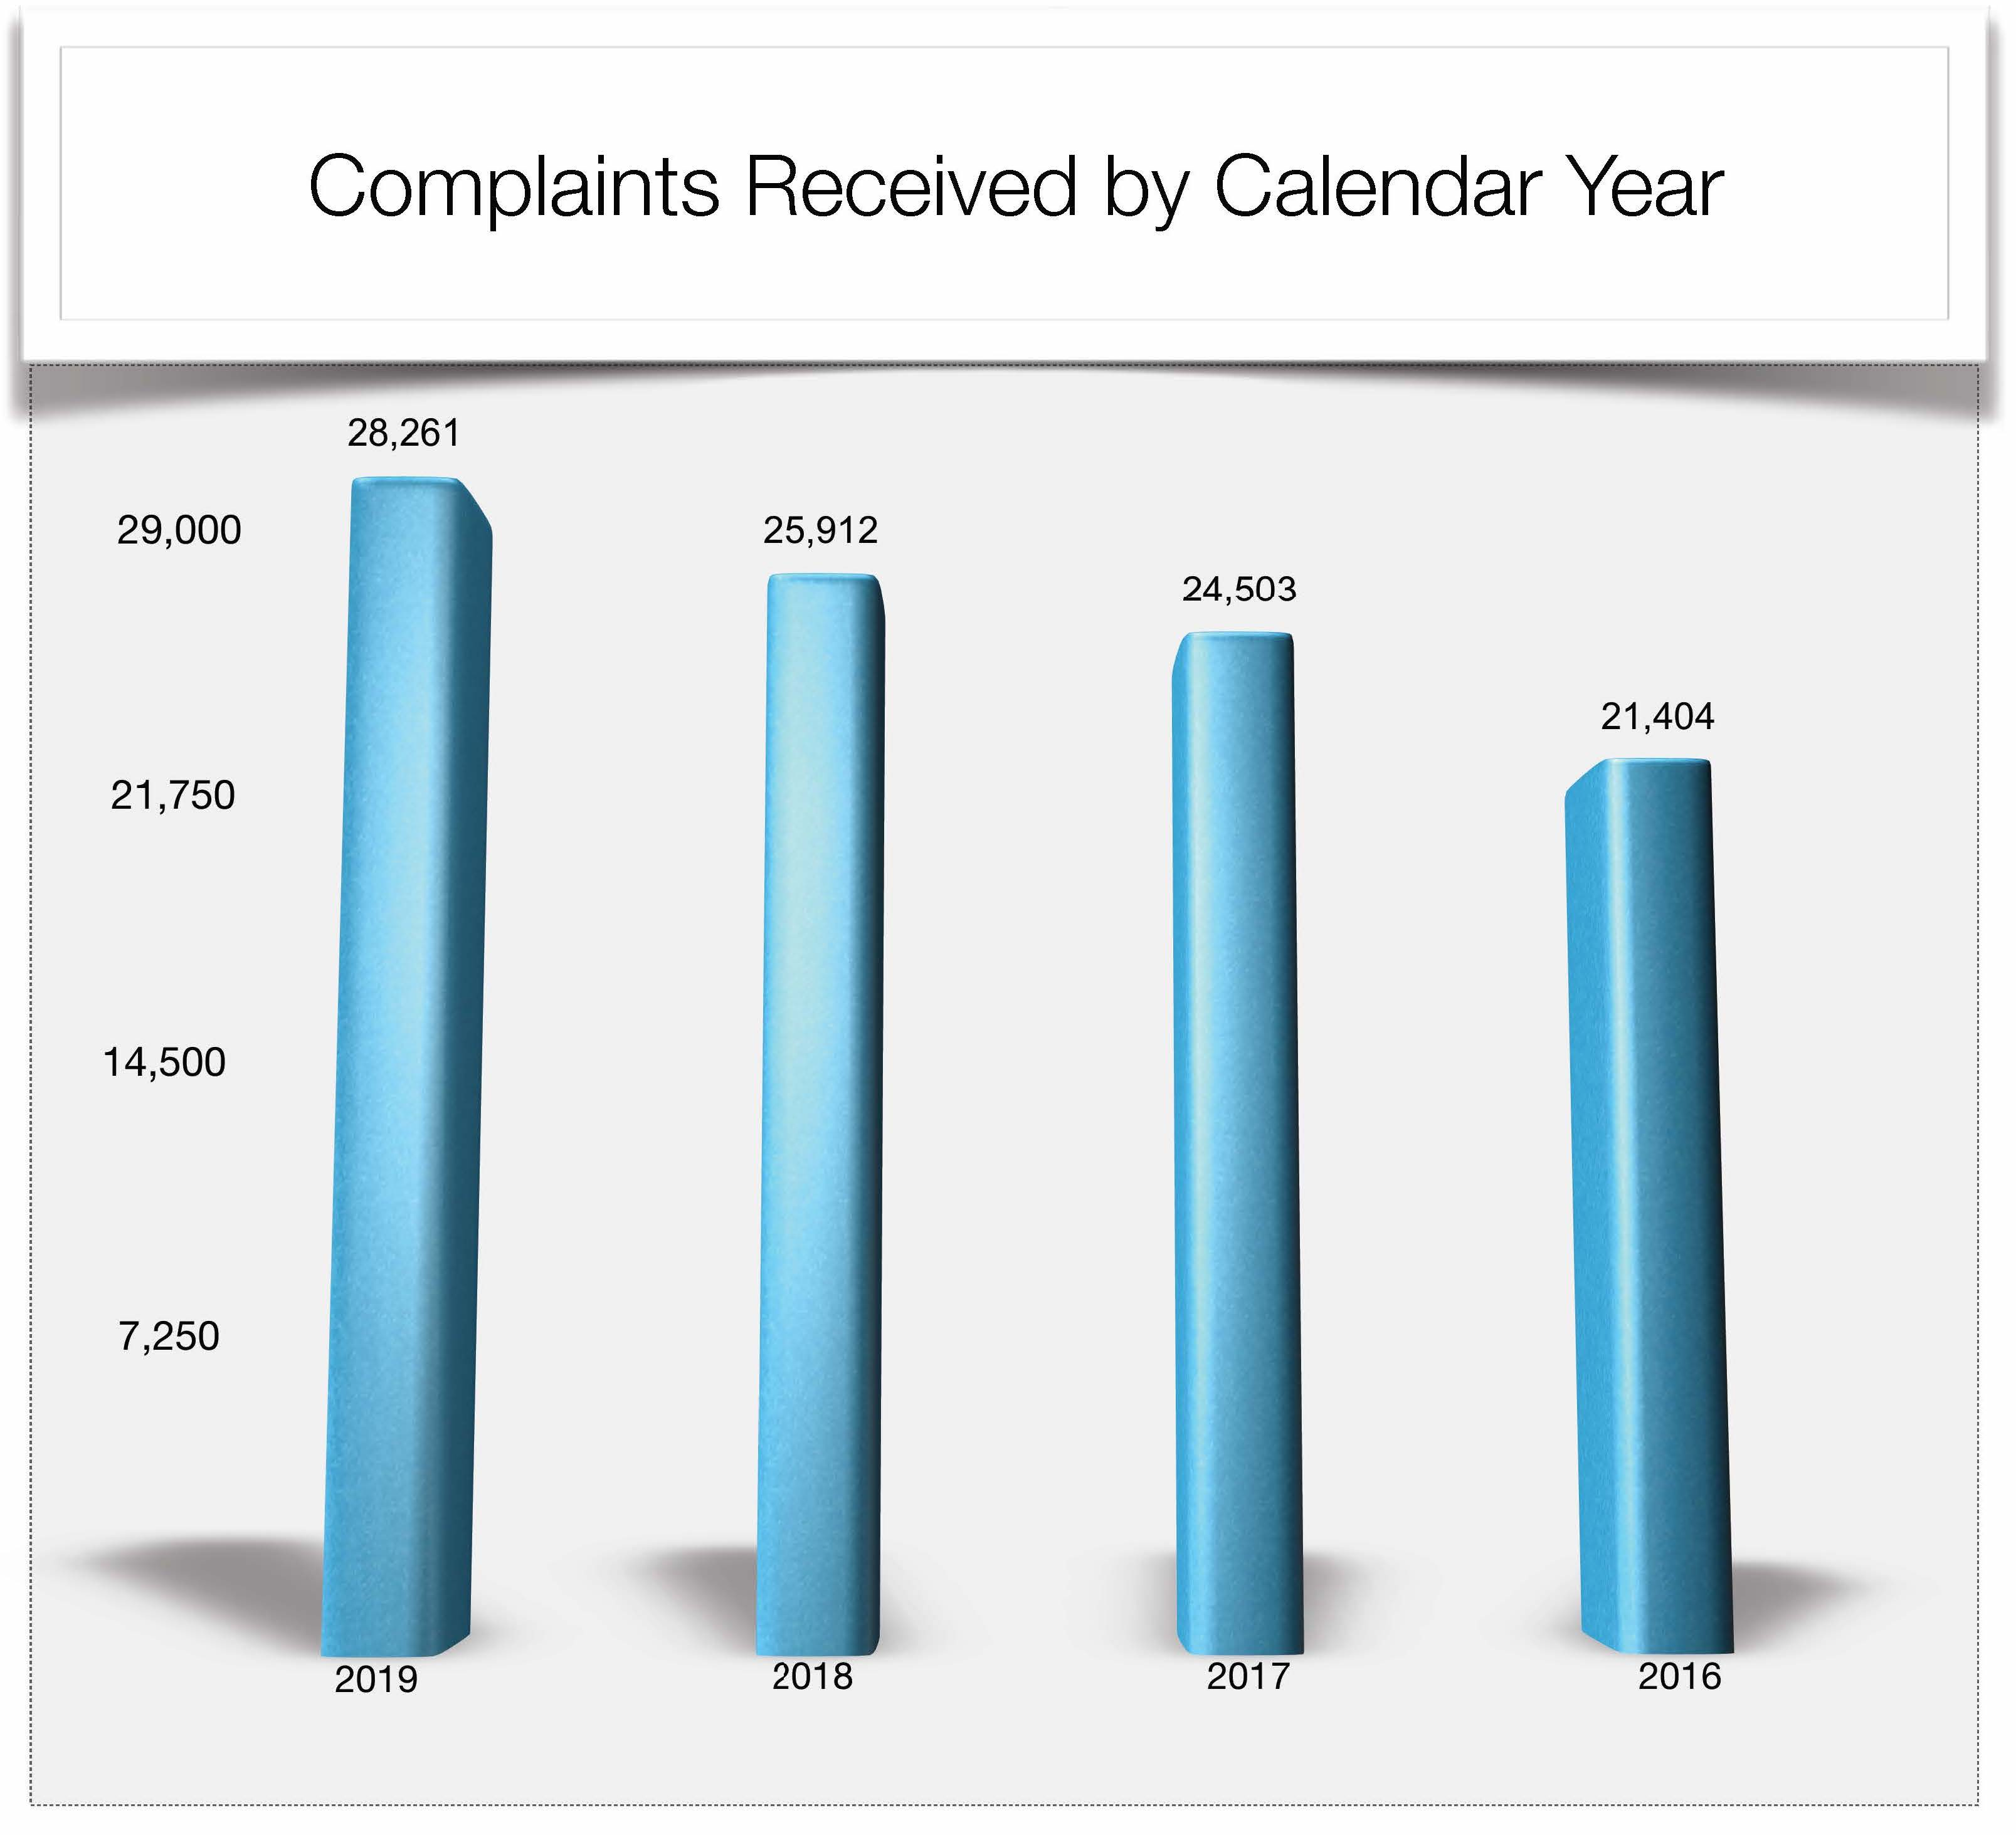 Complaints Received by Calendar Year 2016 - 2019